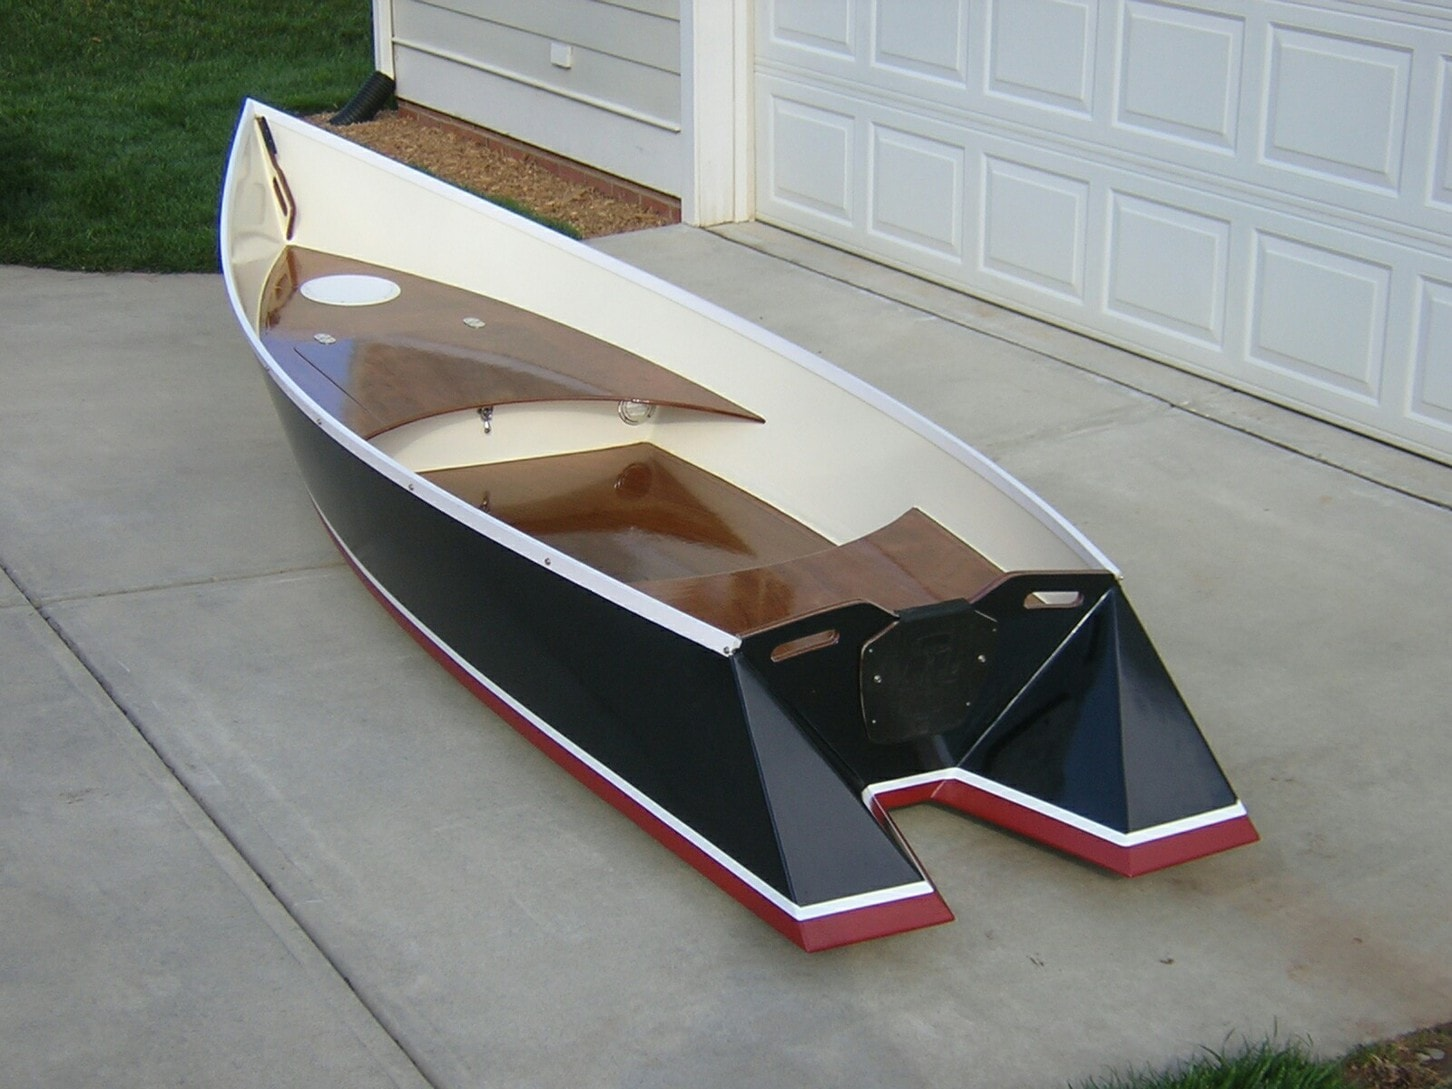 The Original Tango Skiff by Hank Bravo